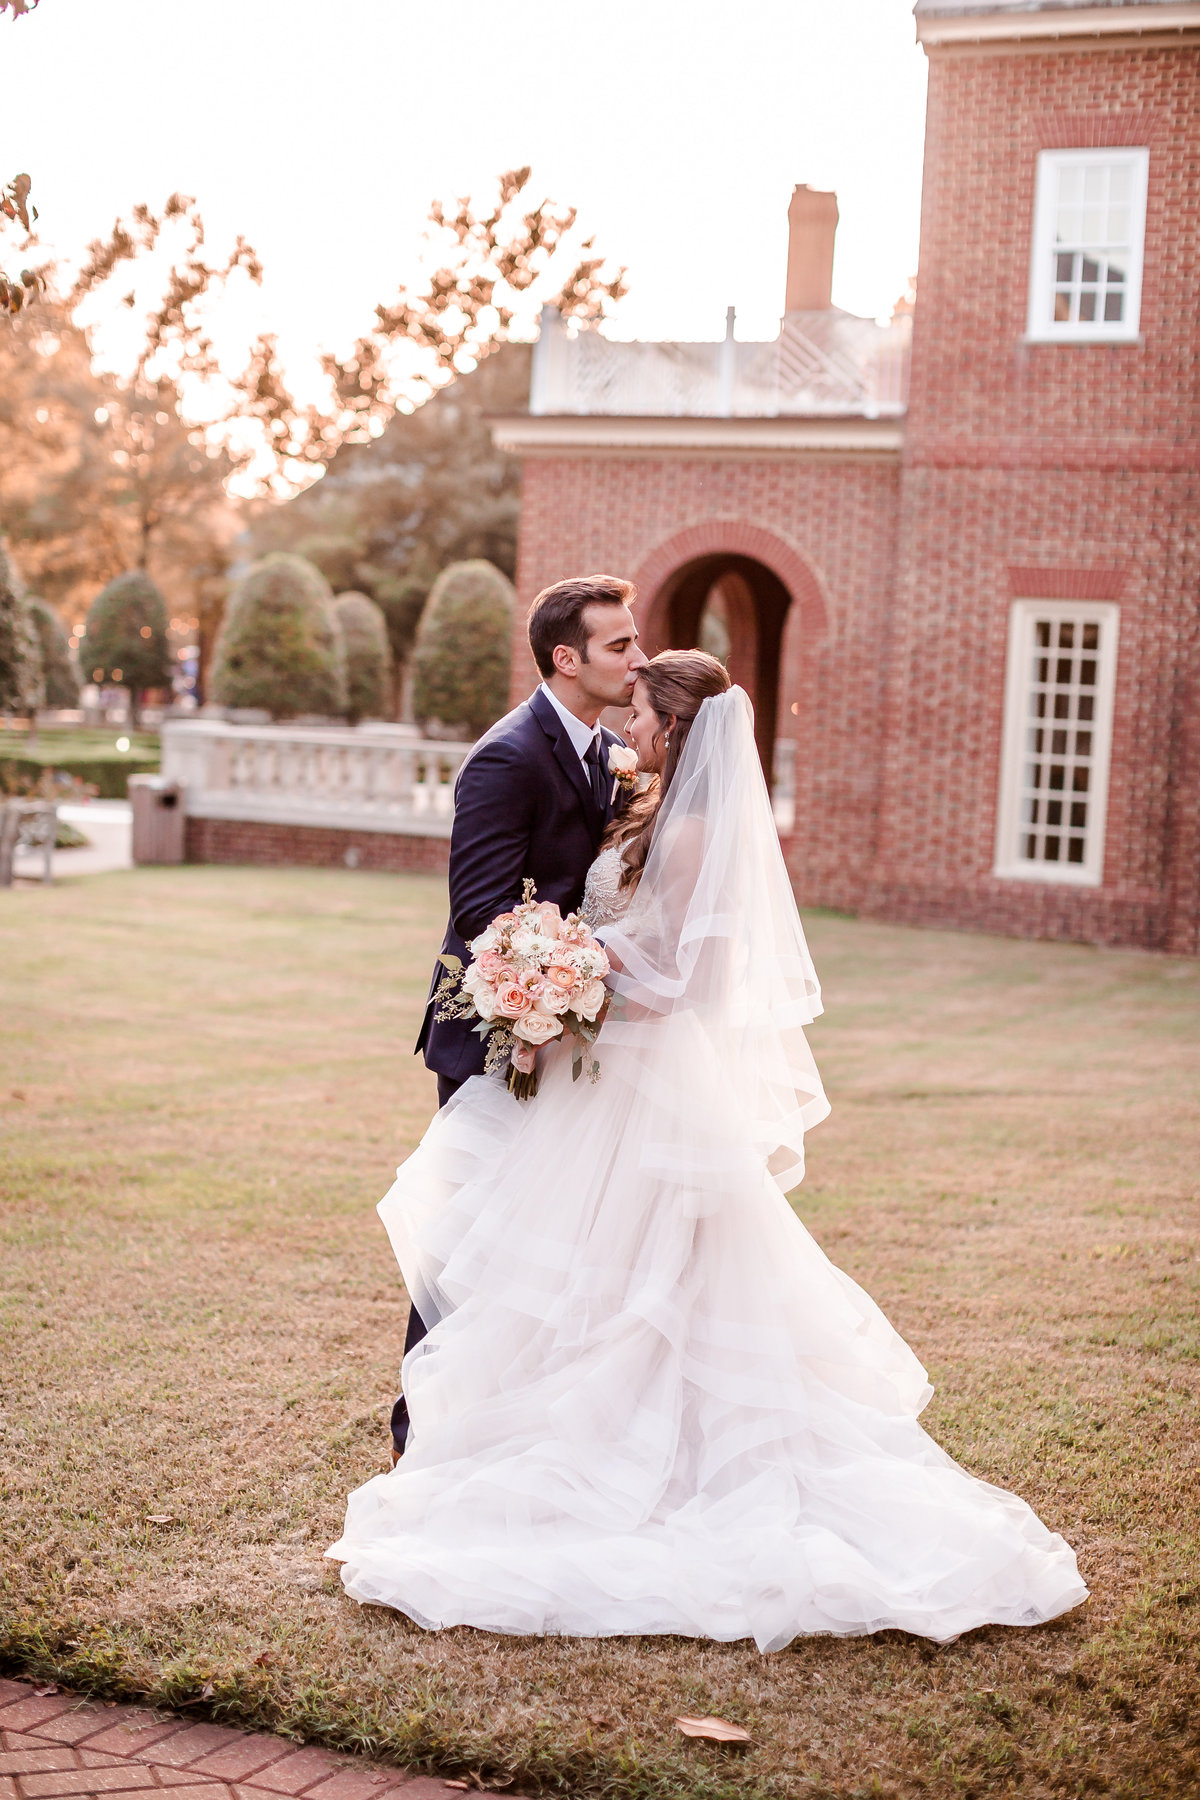 meghan lupyan hampton roads wedding photographer146